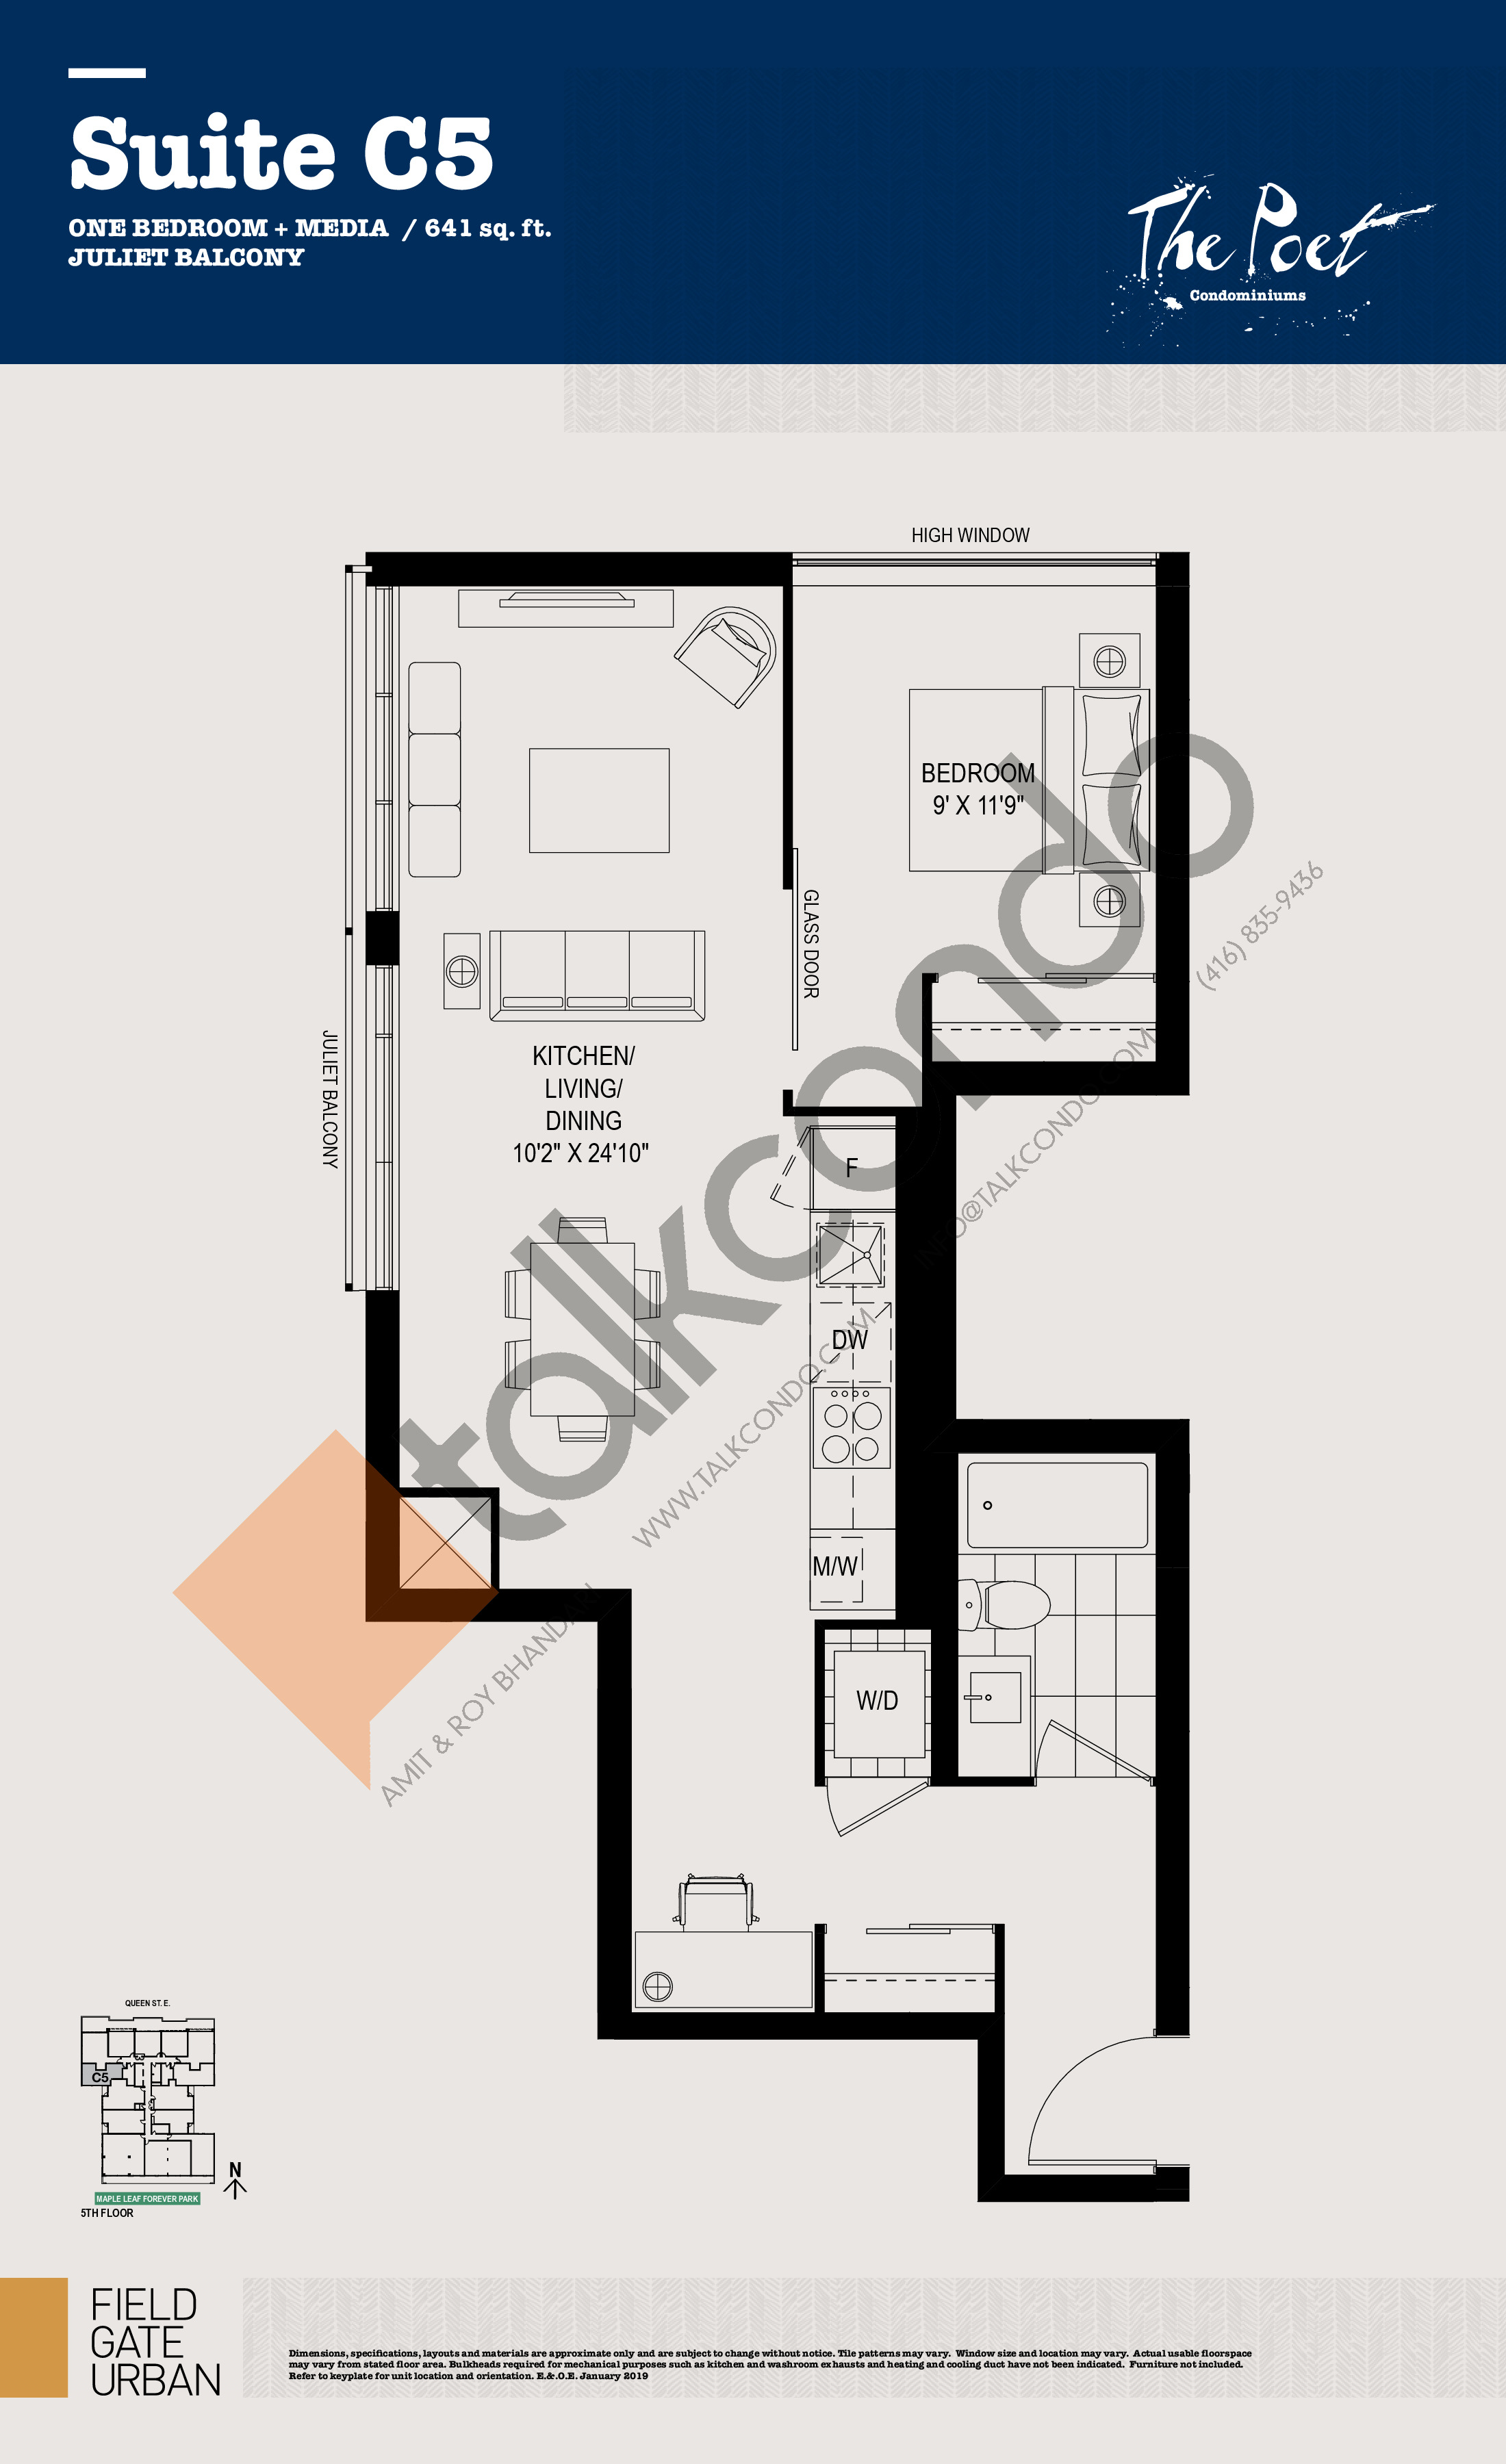 C5 Floor Plan at The Poet Condos - 641 sq.ft